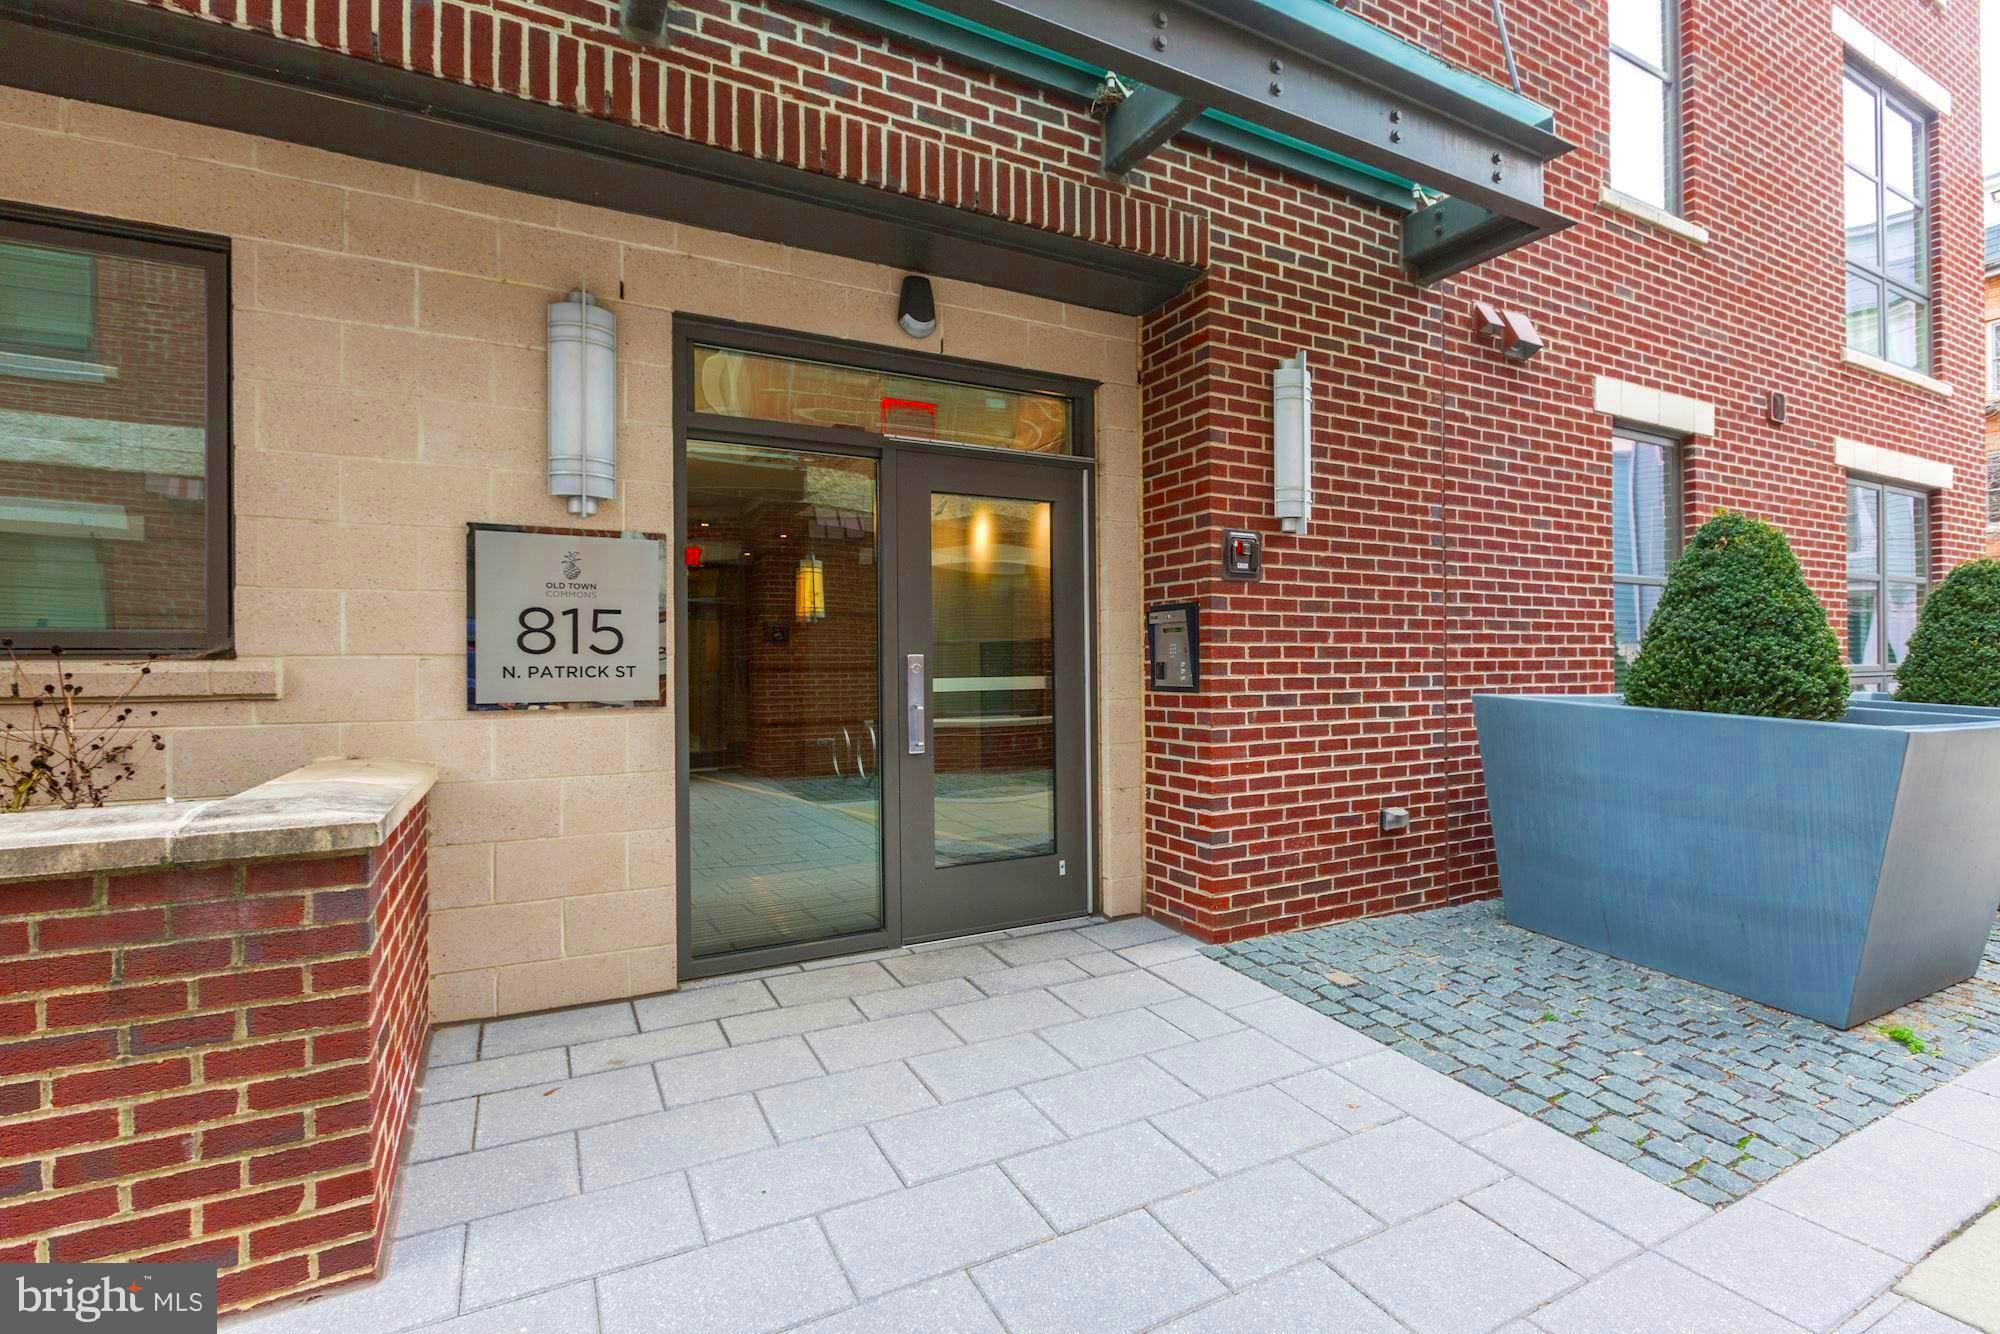 Experience great living at the award-winning Old Town Commons neighborhood by EYA. 1 BR w/Den, garage parking and extra storage.  Old Town Commons is a LEED certified building for maximum energy efficiency and eco friendly living.  This unit boast open floor plan w/9' ceilings and hardwood floors throughout.  Floor-to-ceiling windows allow maximum natural light.   Gourmet kitchen include EnergyStar appliances, under-mount cabinet lights, large center island & granite counters.  Old Town Commons is a 5-city-block redevelopment in the historic Parker Gray District of Old Town Alexandria. The community is within walking distance to the Braddock Metro station, the Potomac River, and Harris Teeter.  The building gets discount at Charles Houston recreation Center located at 901 Wythe St.  The Charles Houston Recreation Center is a family recreation center offering a wide variety of activities and classes throughout the year including swimming, weight lifting, cardio, basketball, boxing, fun family and community events.